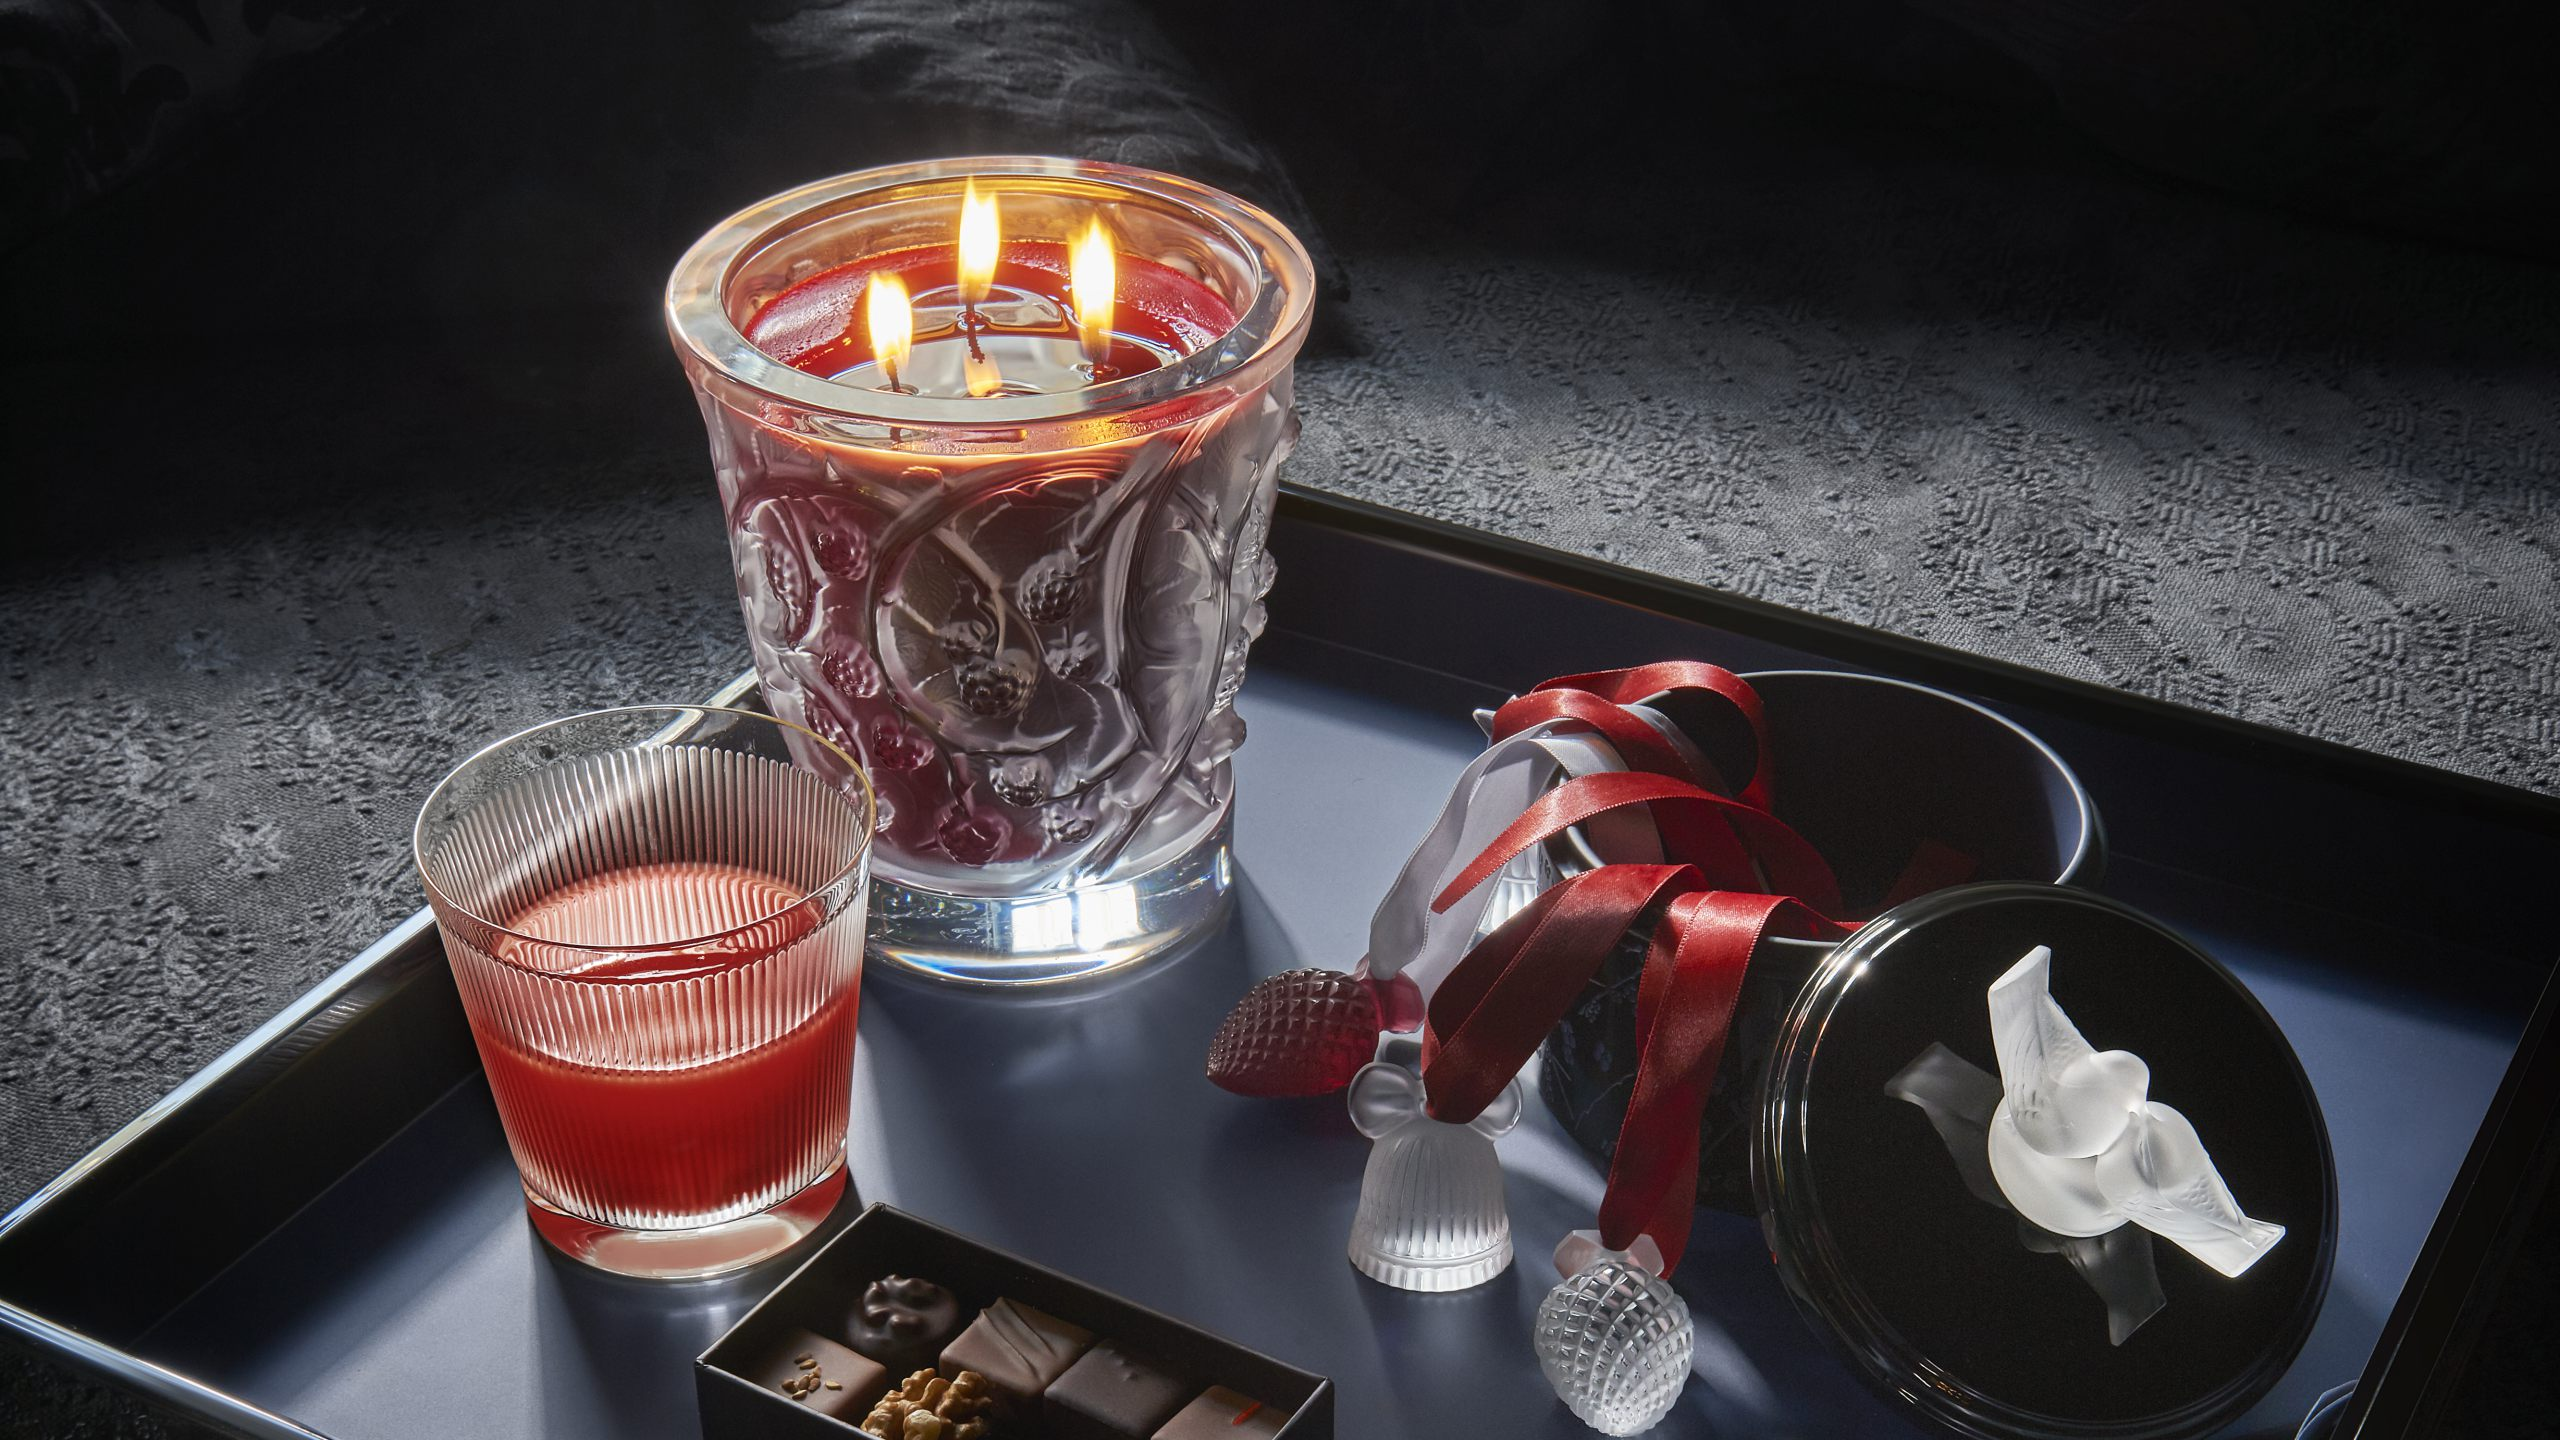 Shop these candles and accessories to bring some festive cheer to your home